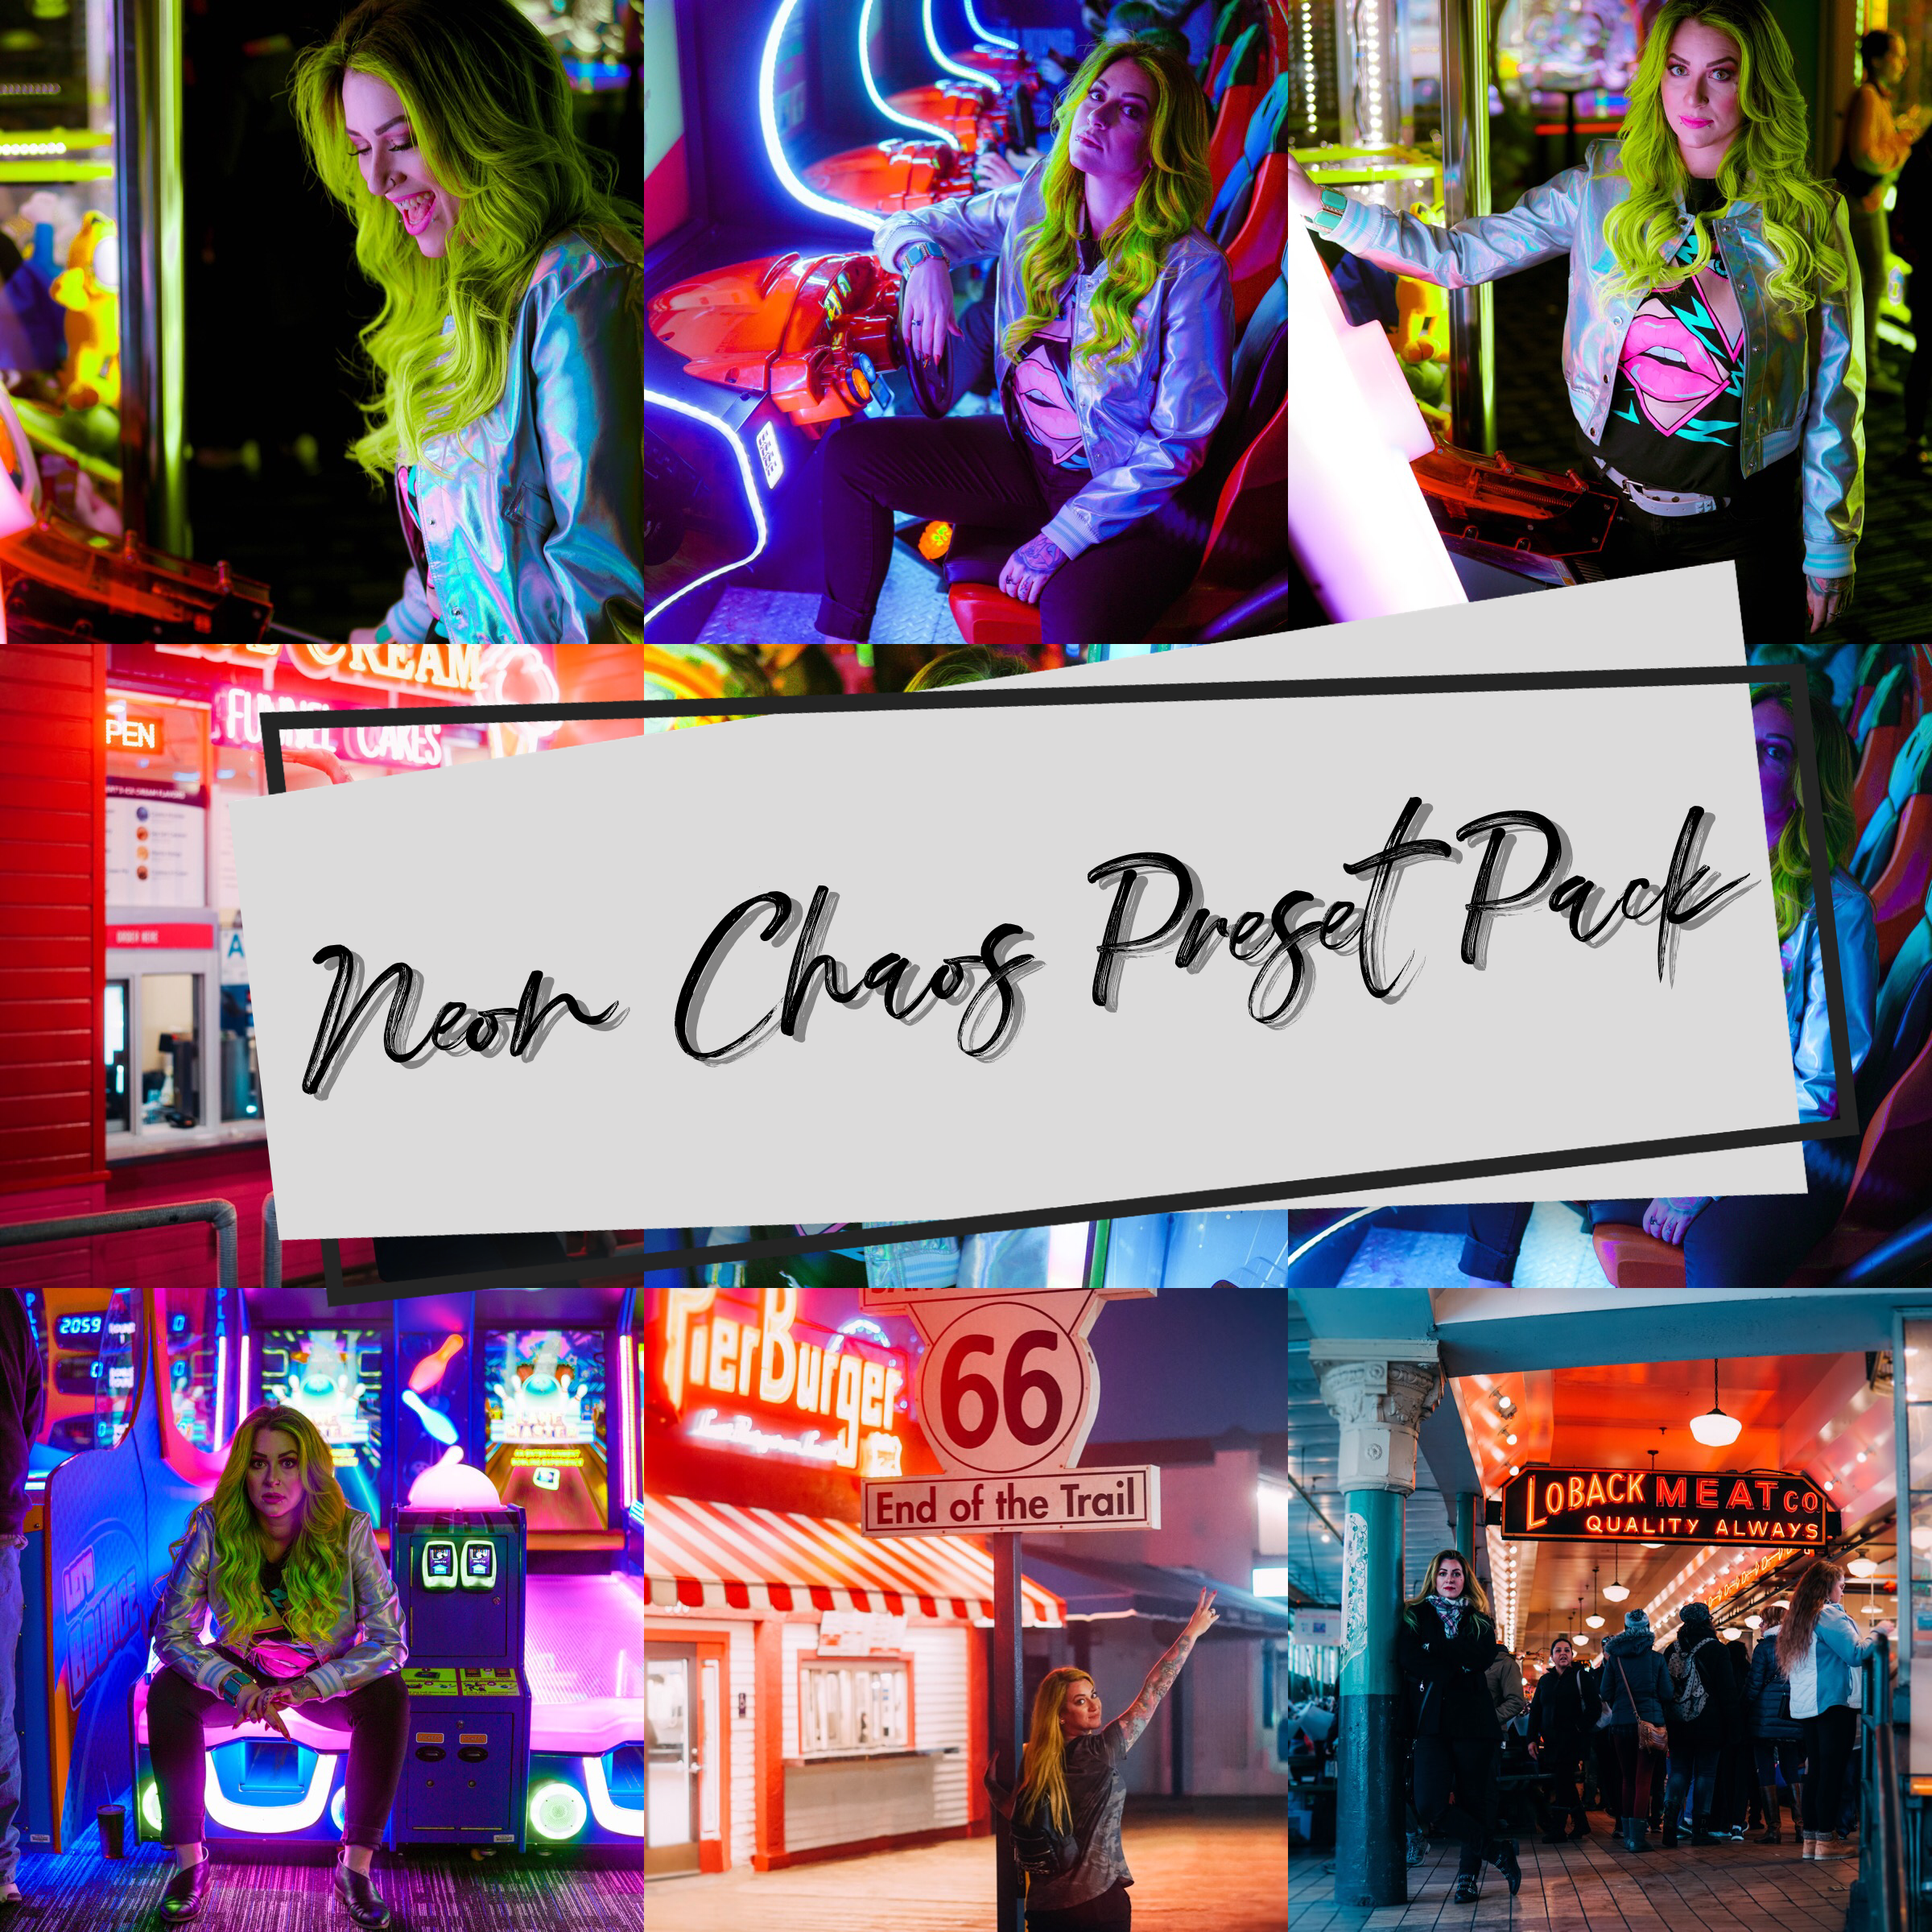 Neon Chaos Preset Pack- The Chaos Collective